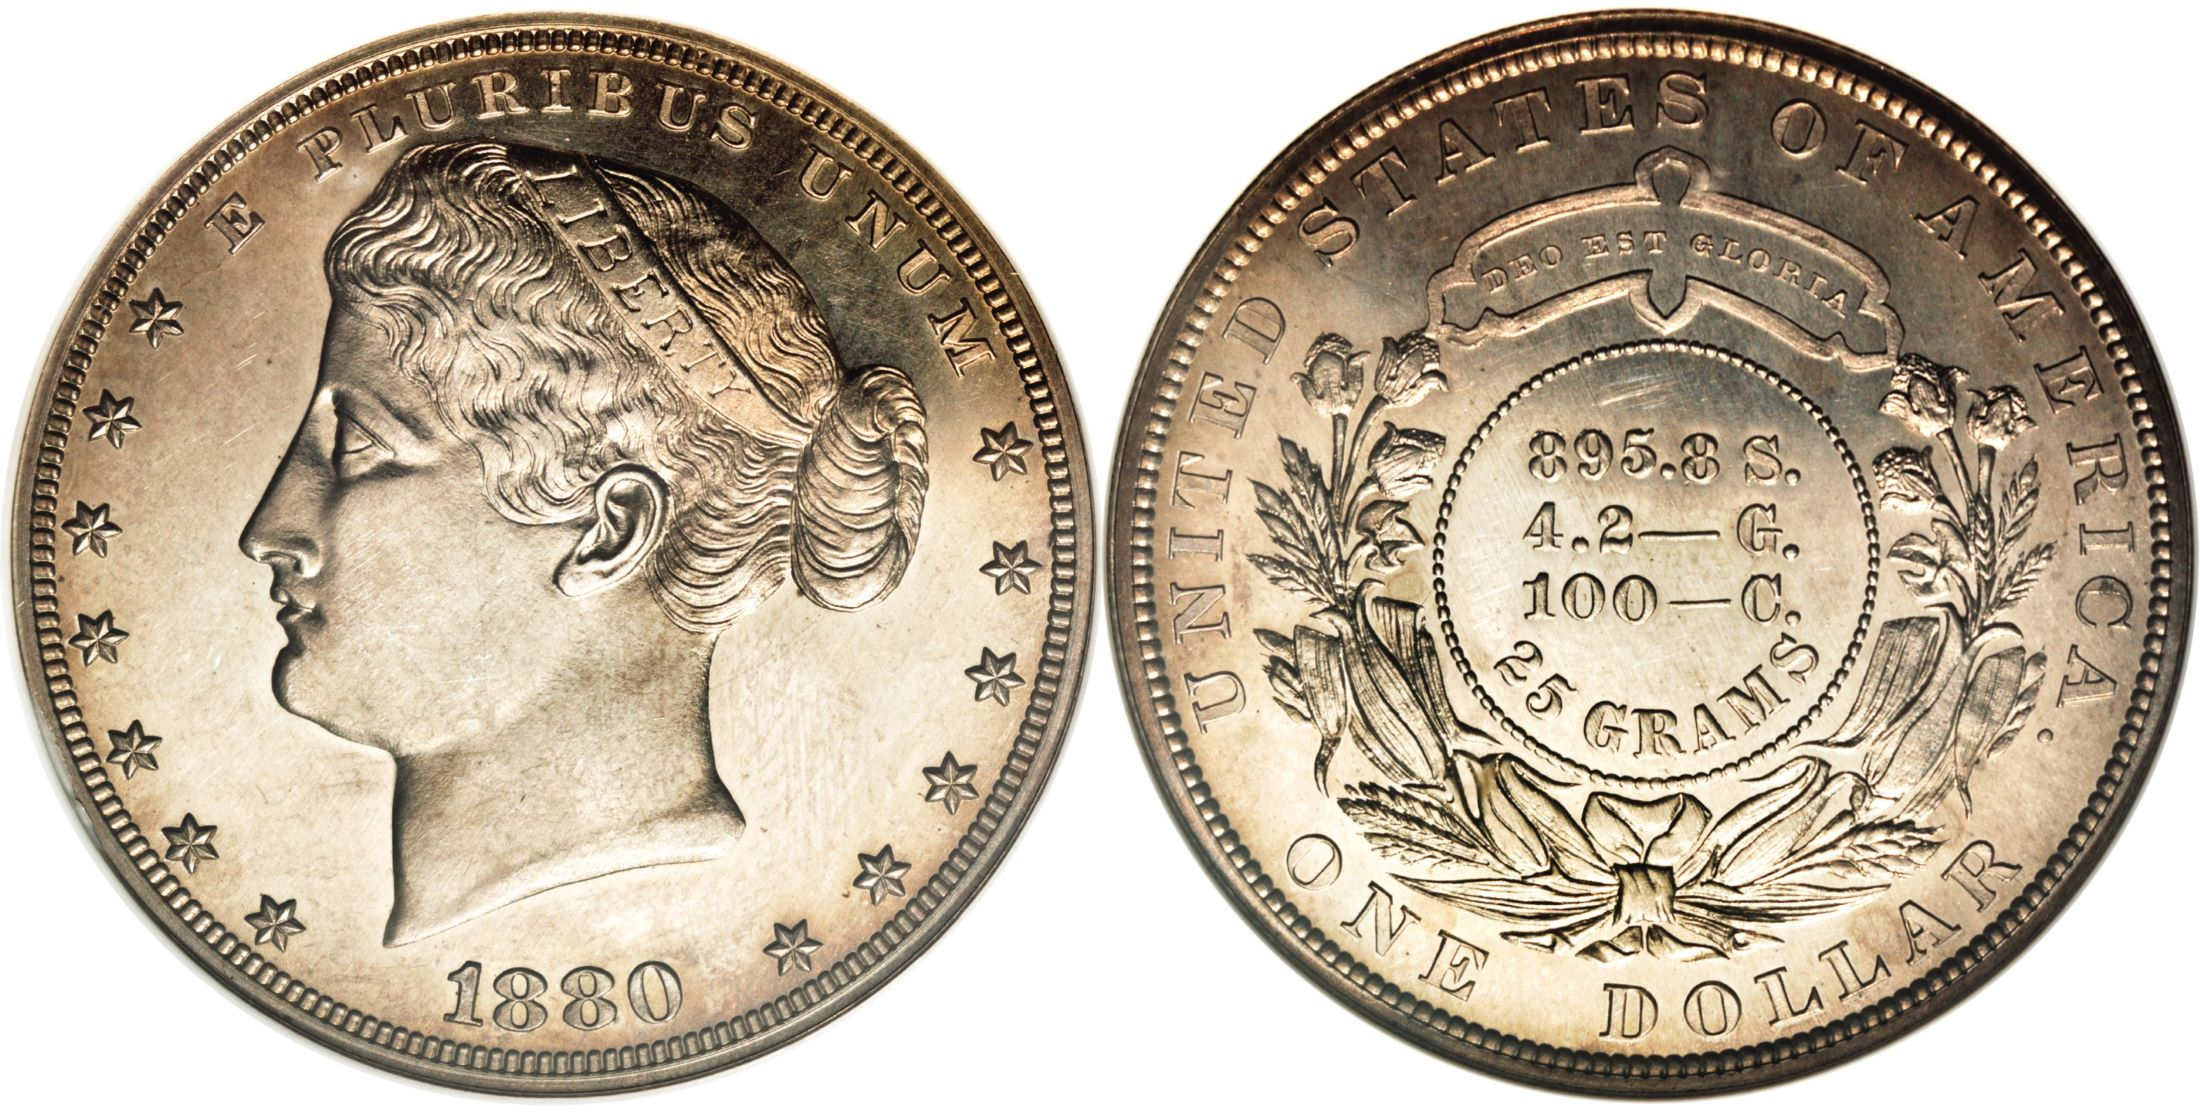 """PR62 estimated grade<BR>Image courtesy of <a href=""""http://www.ha.com"""" target=""""_blank"""">Heritage Numismatic Auctions</a>"""